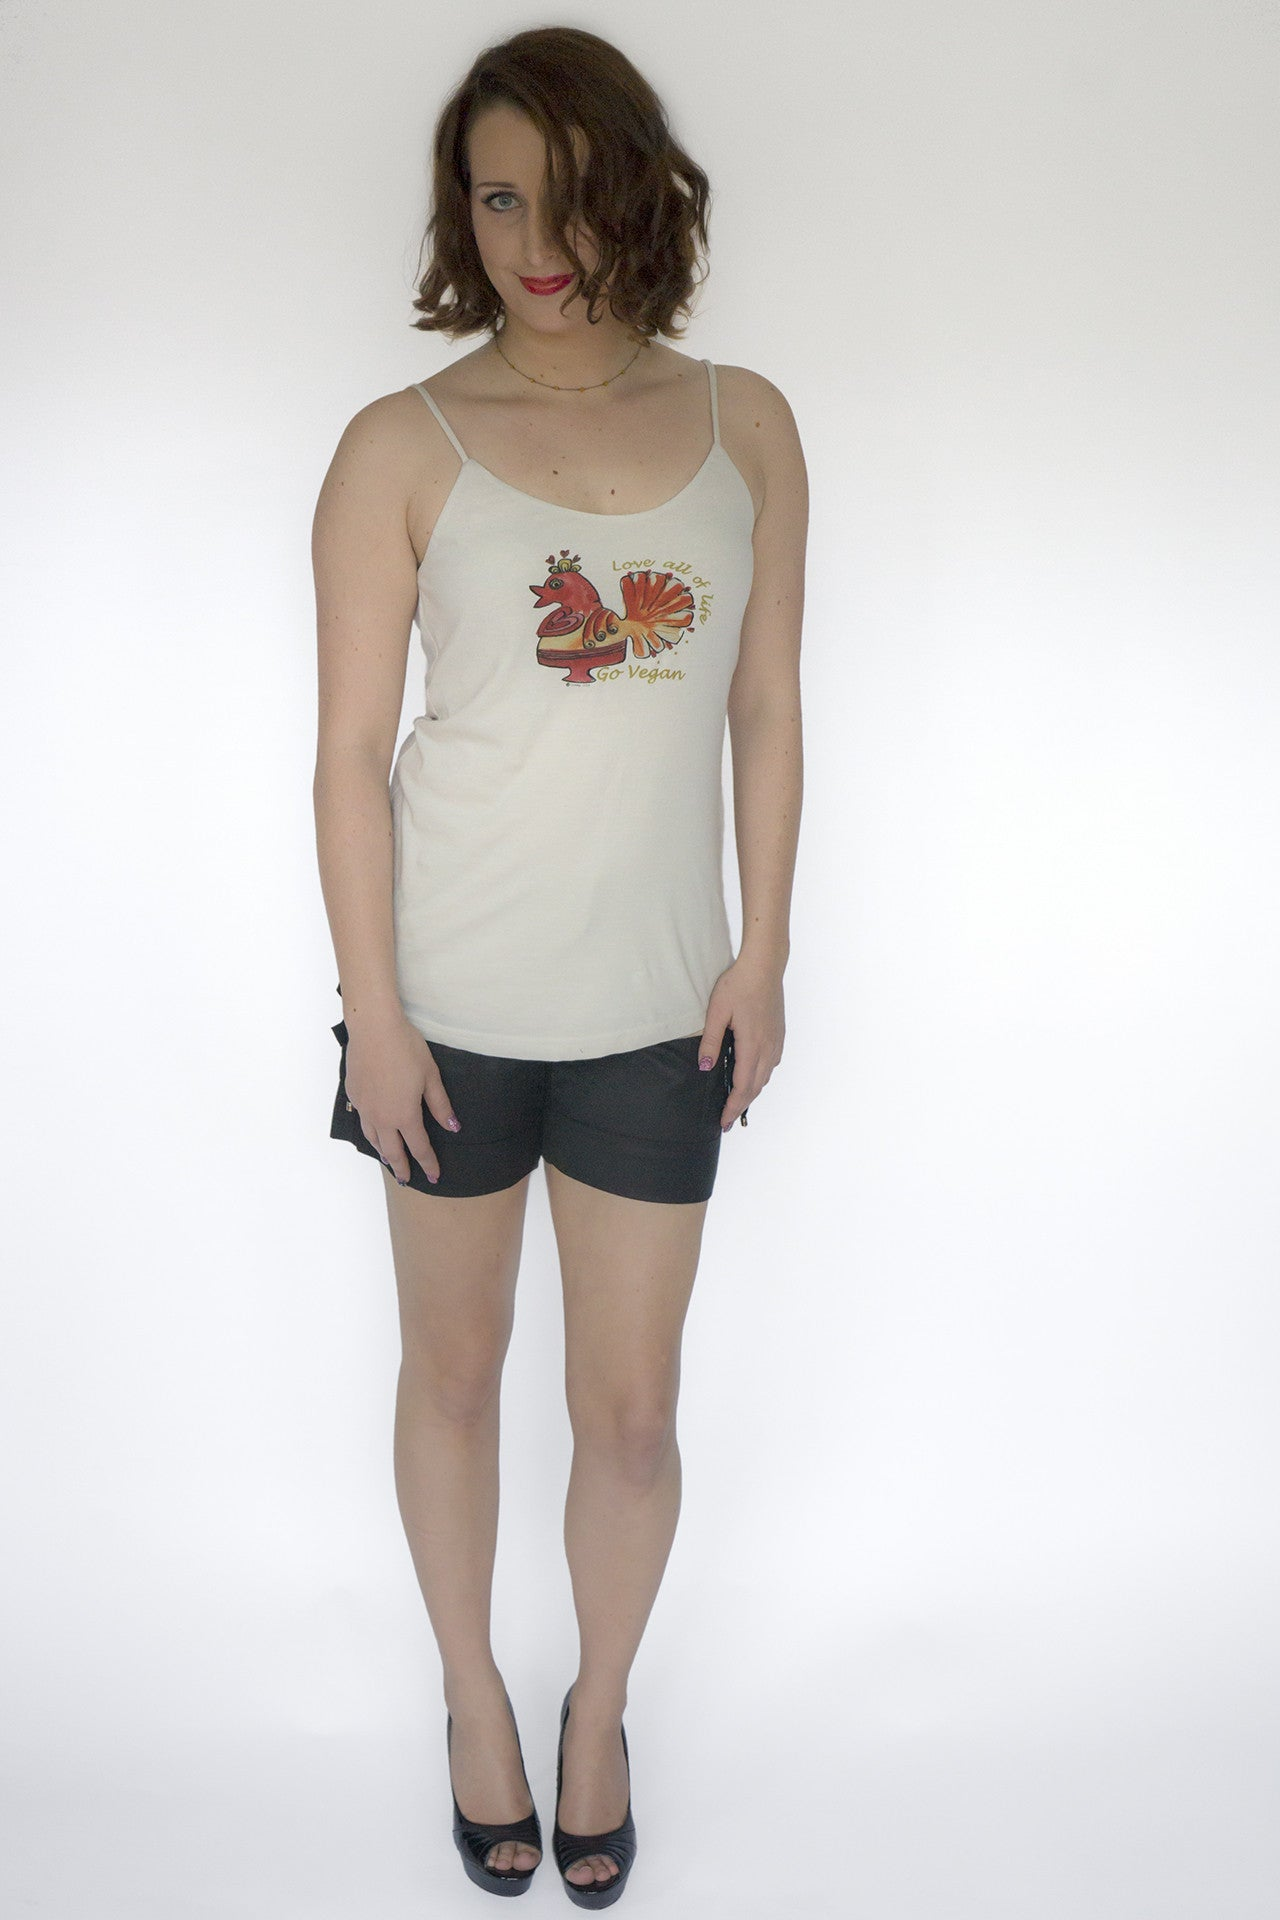 Reversible Camisole - SOLD OUT